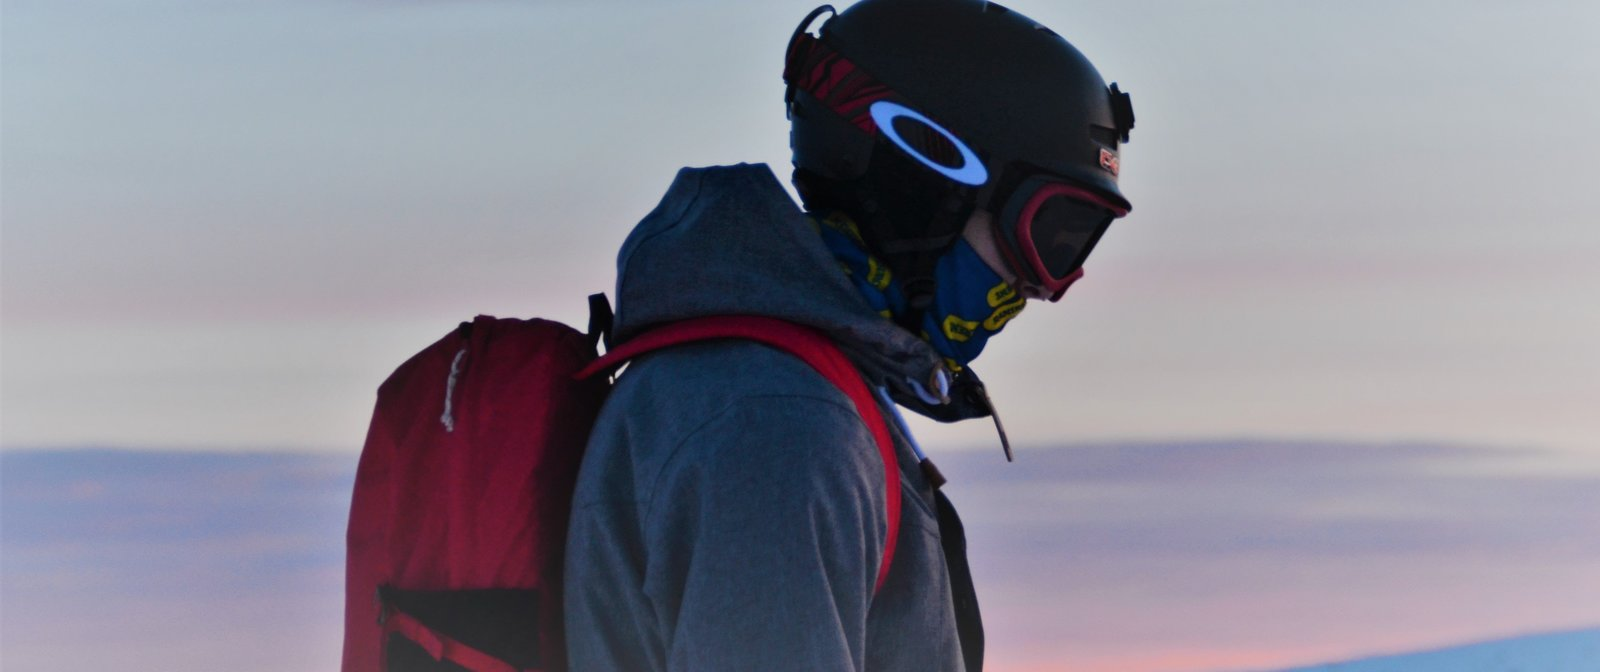 Man standing on the mountains during sunset with oakley goggles and red backpack